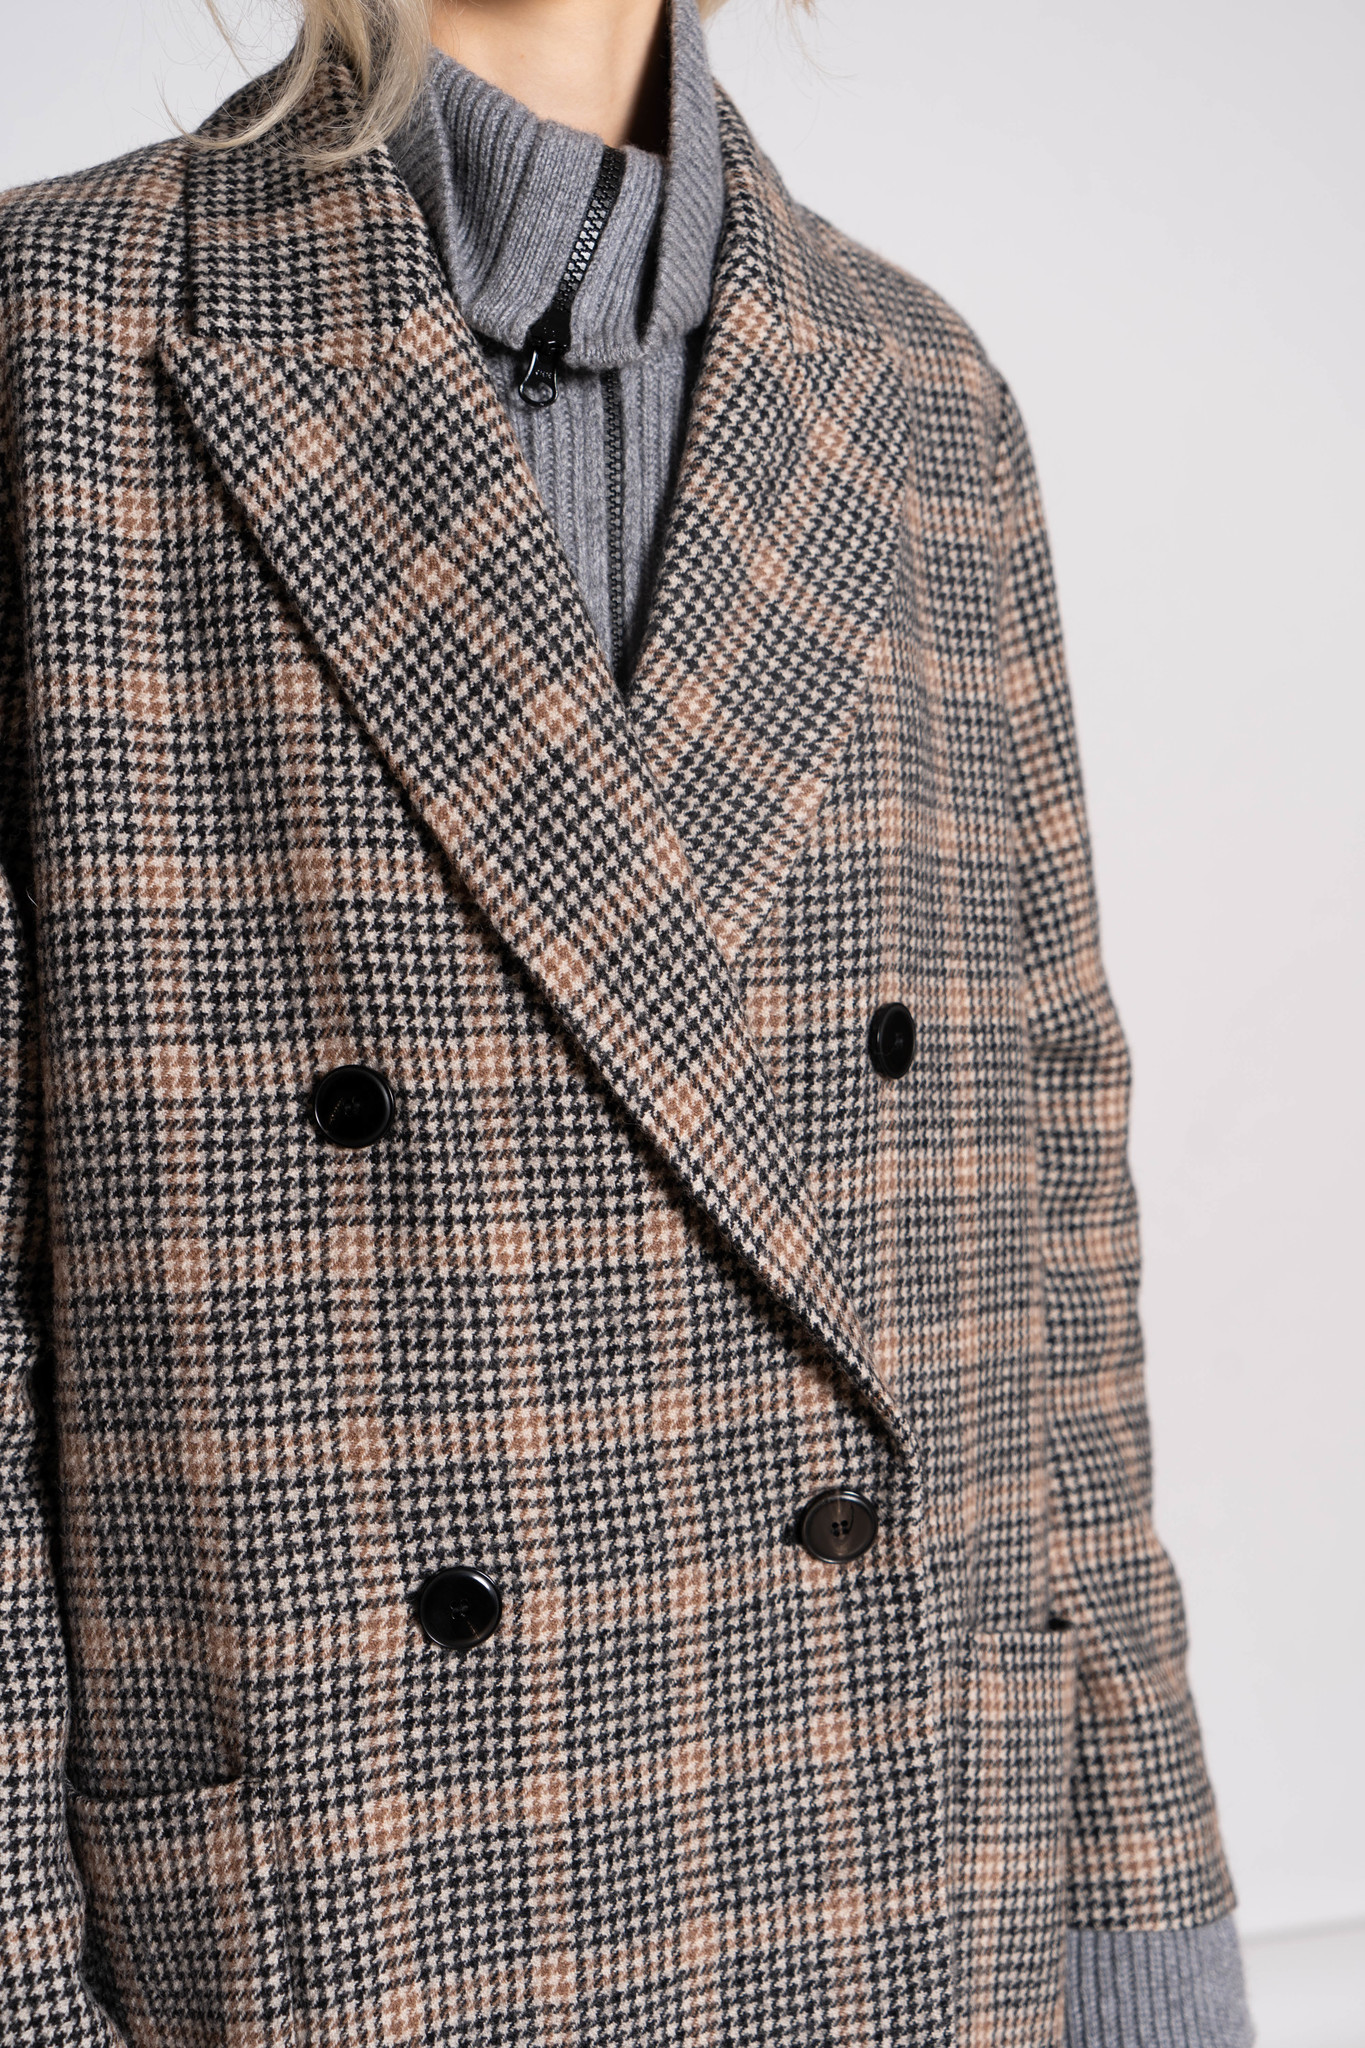 Double Breasted Coat Black Beige Check